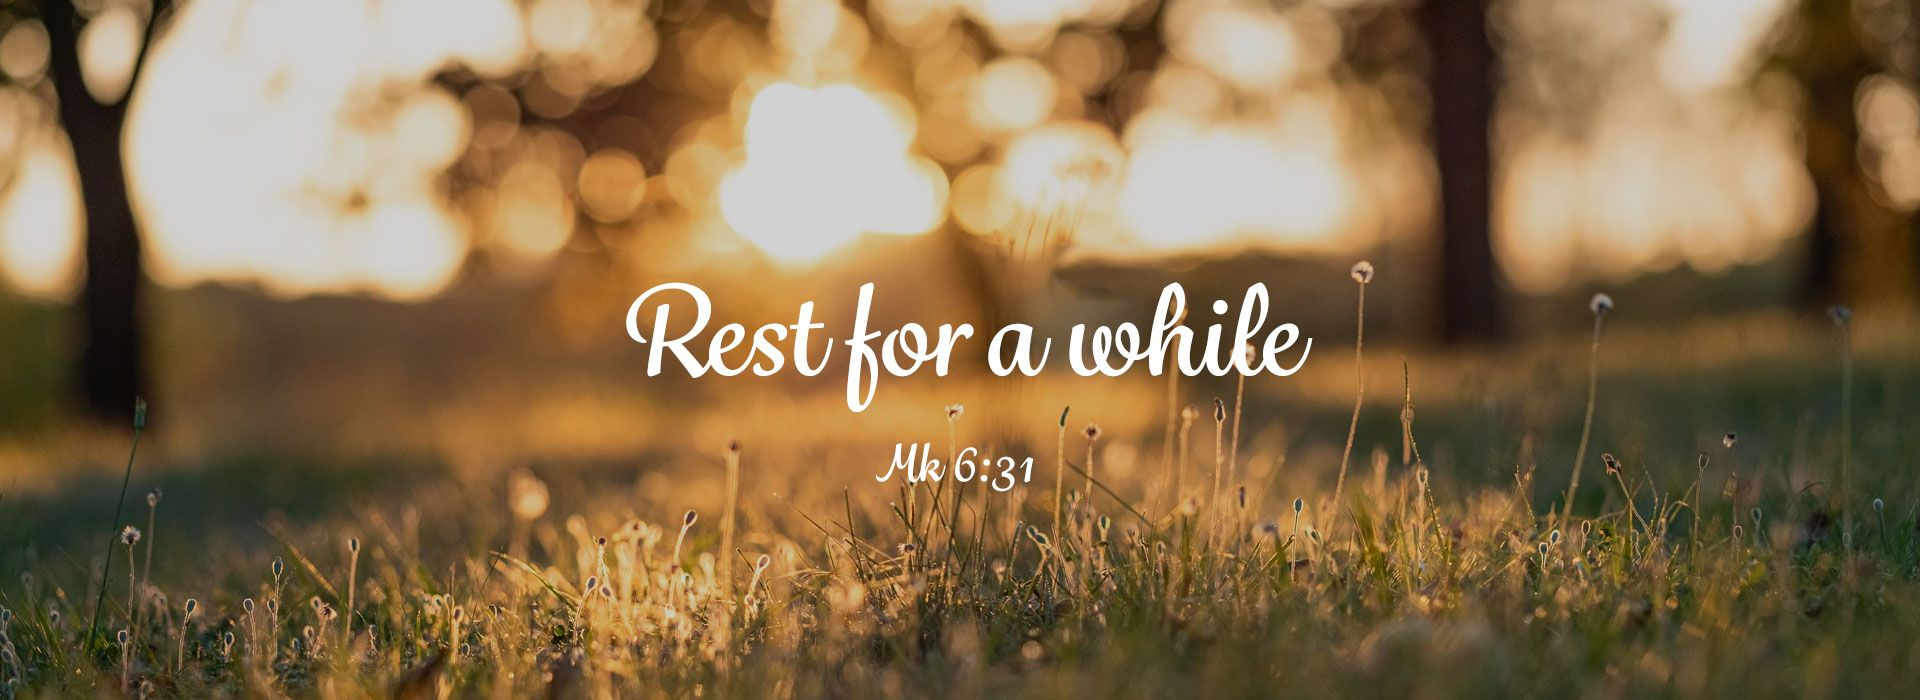 Sixteenth Sunday in Ordinary Time (18th July 2021)